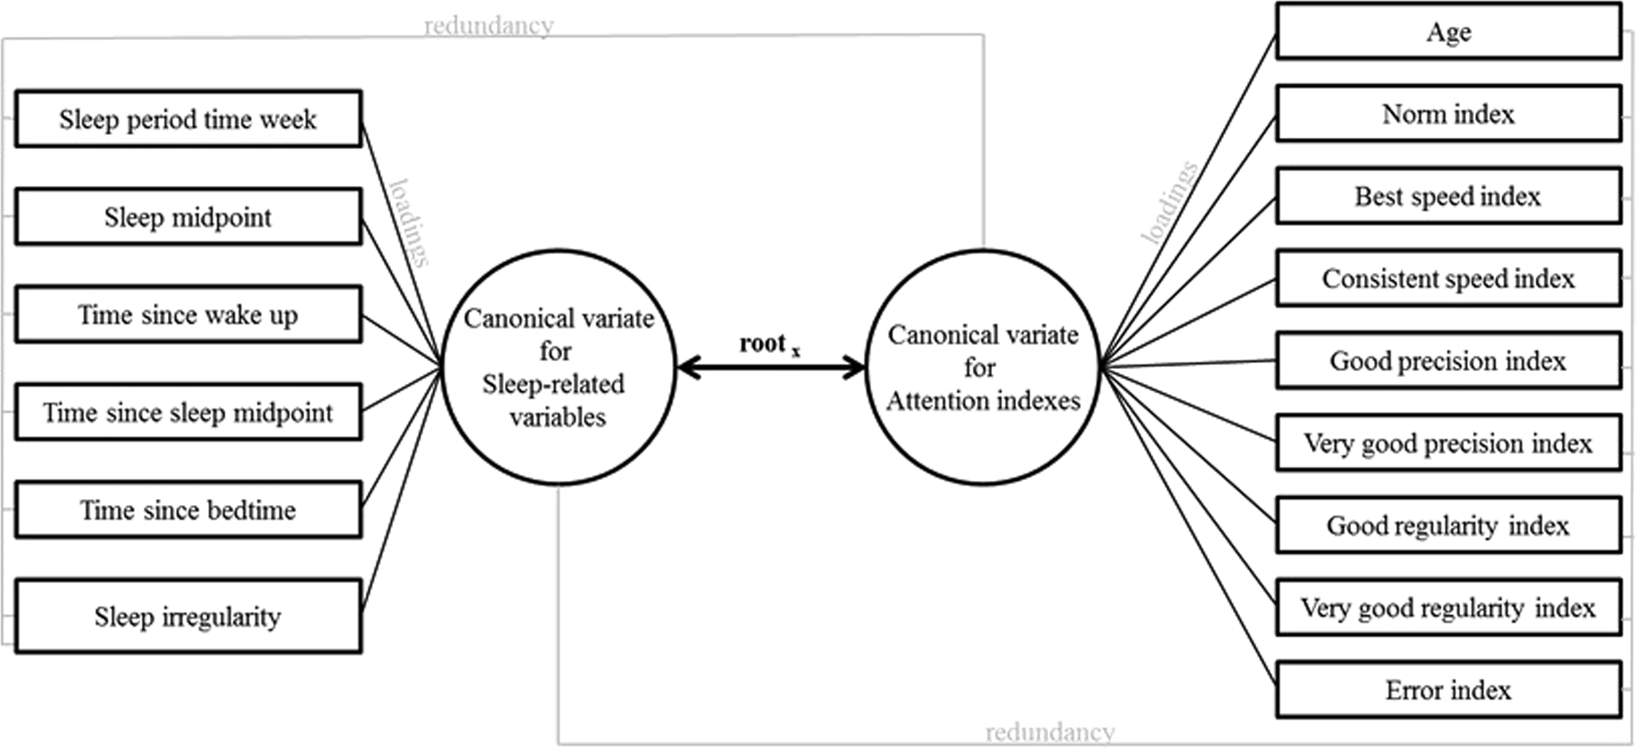 Mind-wandering, or the allocation of attentional resources, is sleep